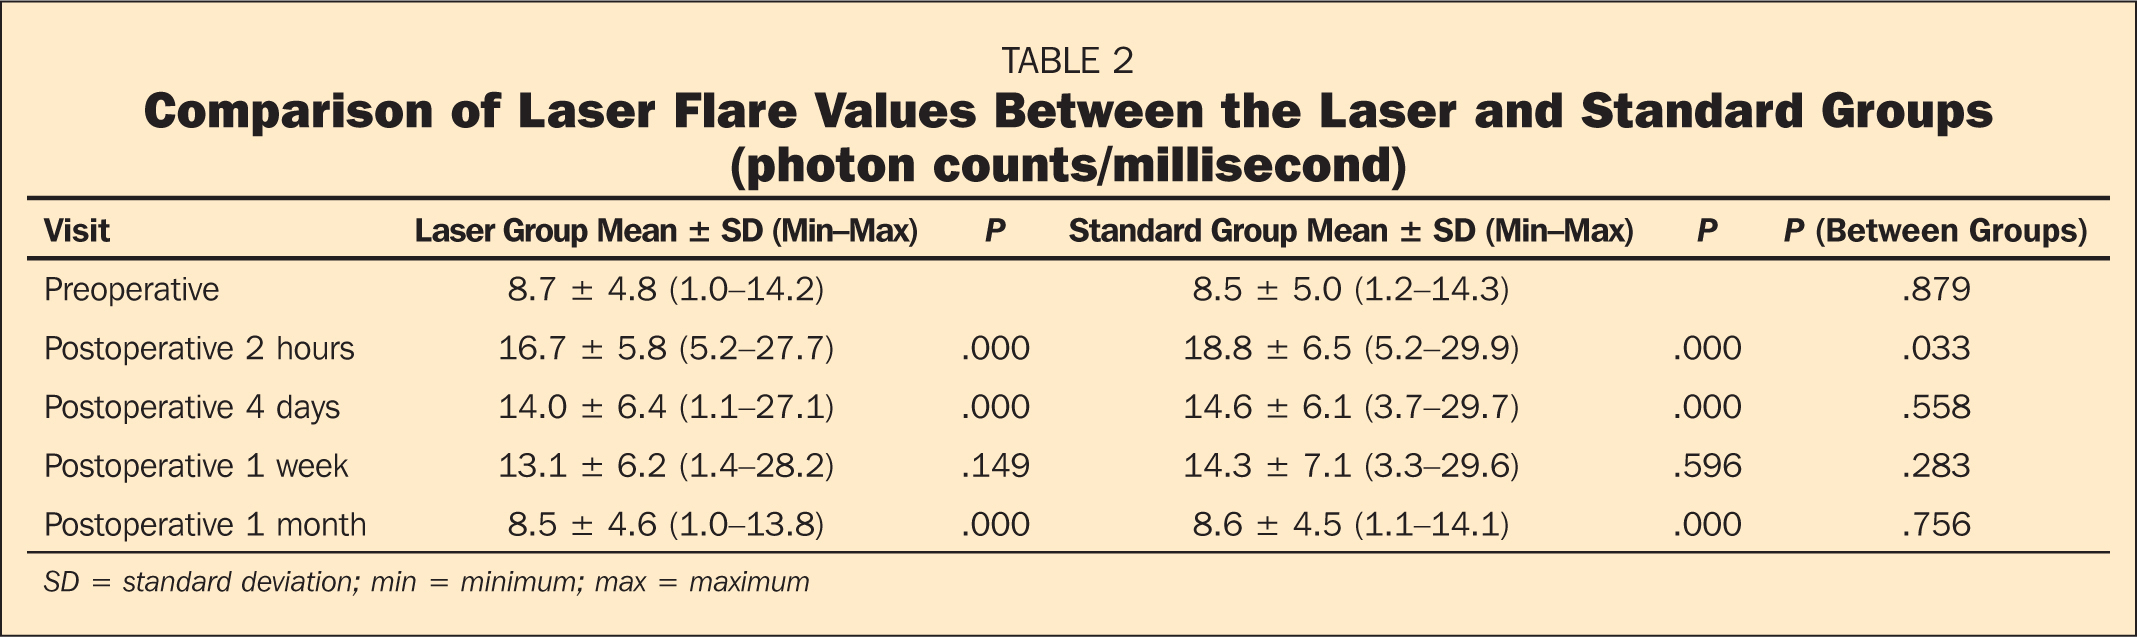 Comparison of Laser Flare Values Between the Laser and Standard Groups (photon counts/millisecond)